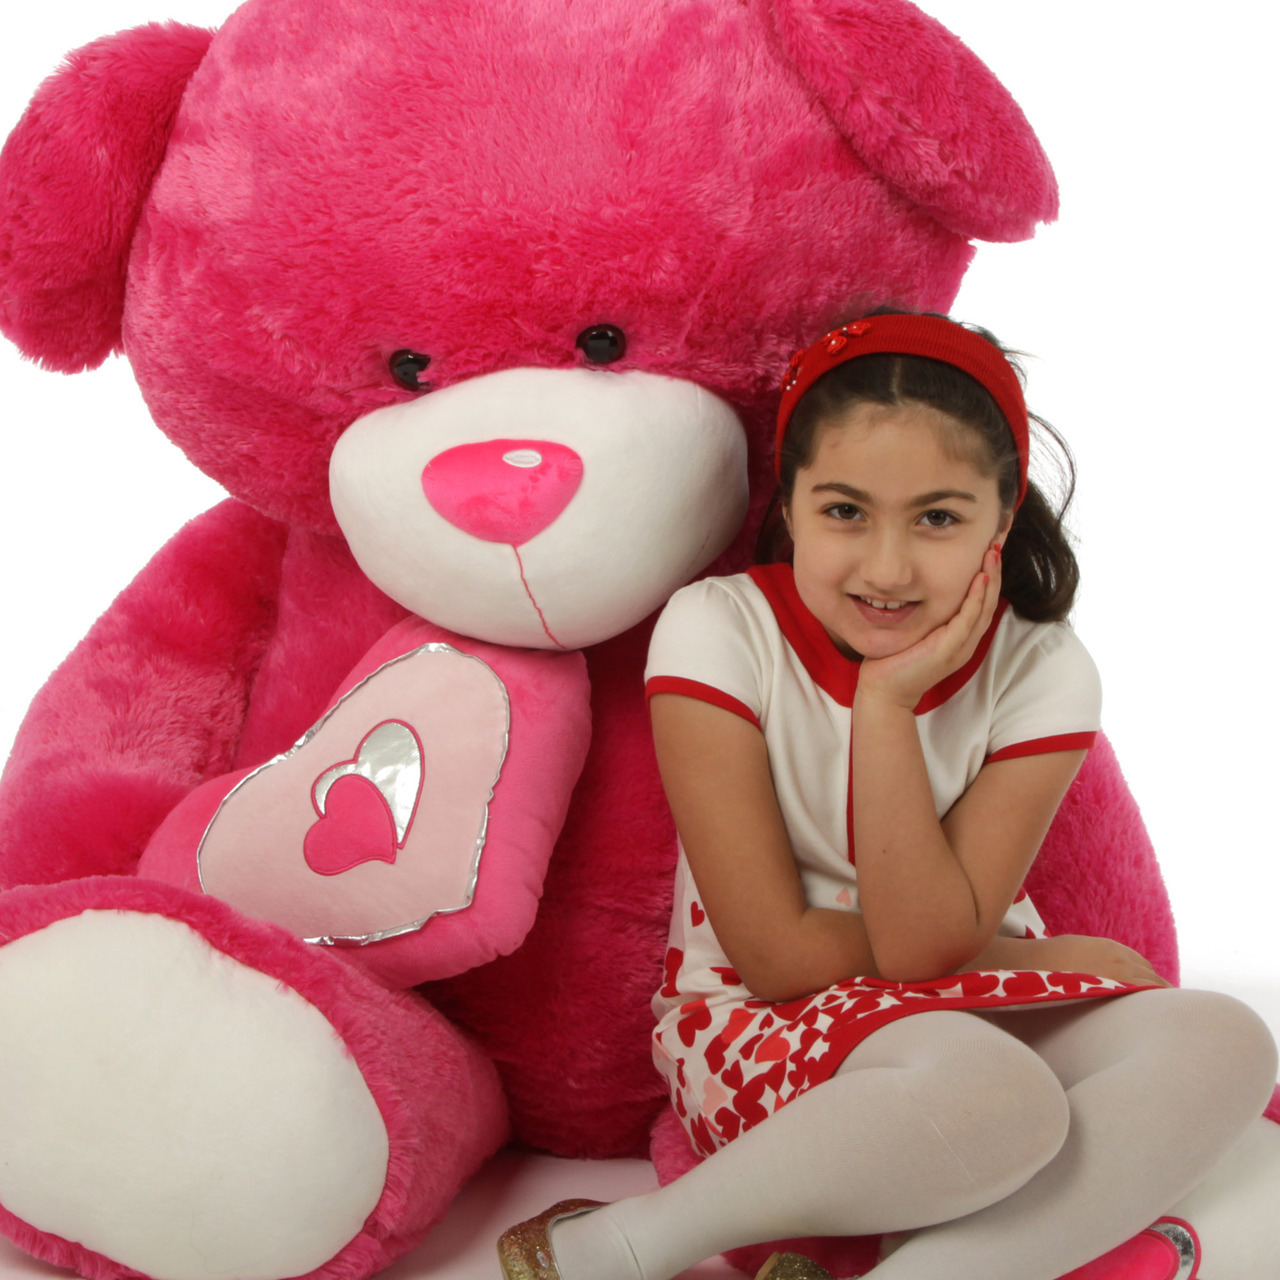 Teddy Day Images for Whatsapp DP, Profile